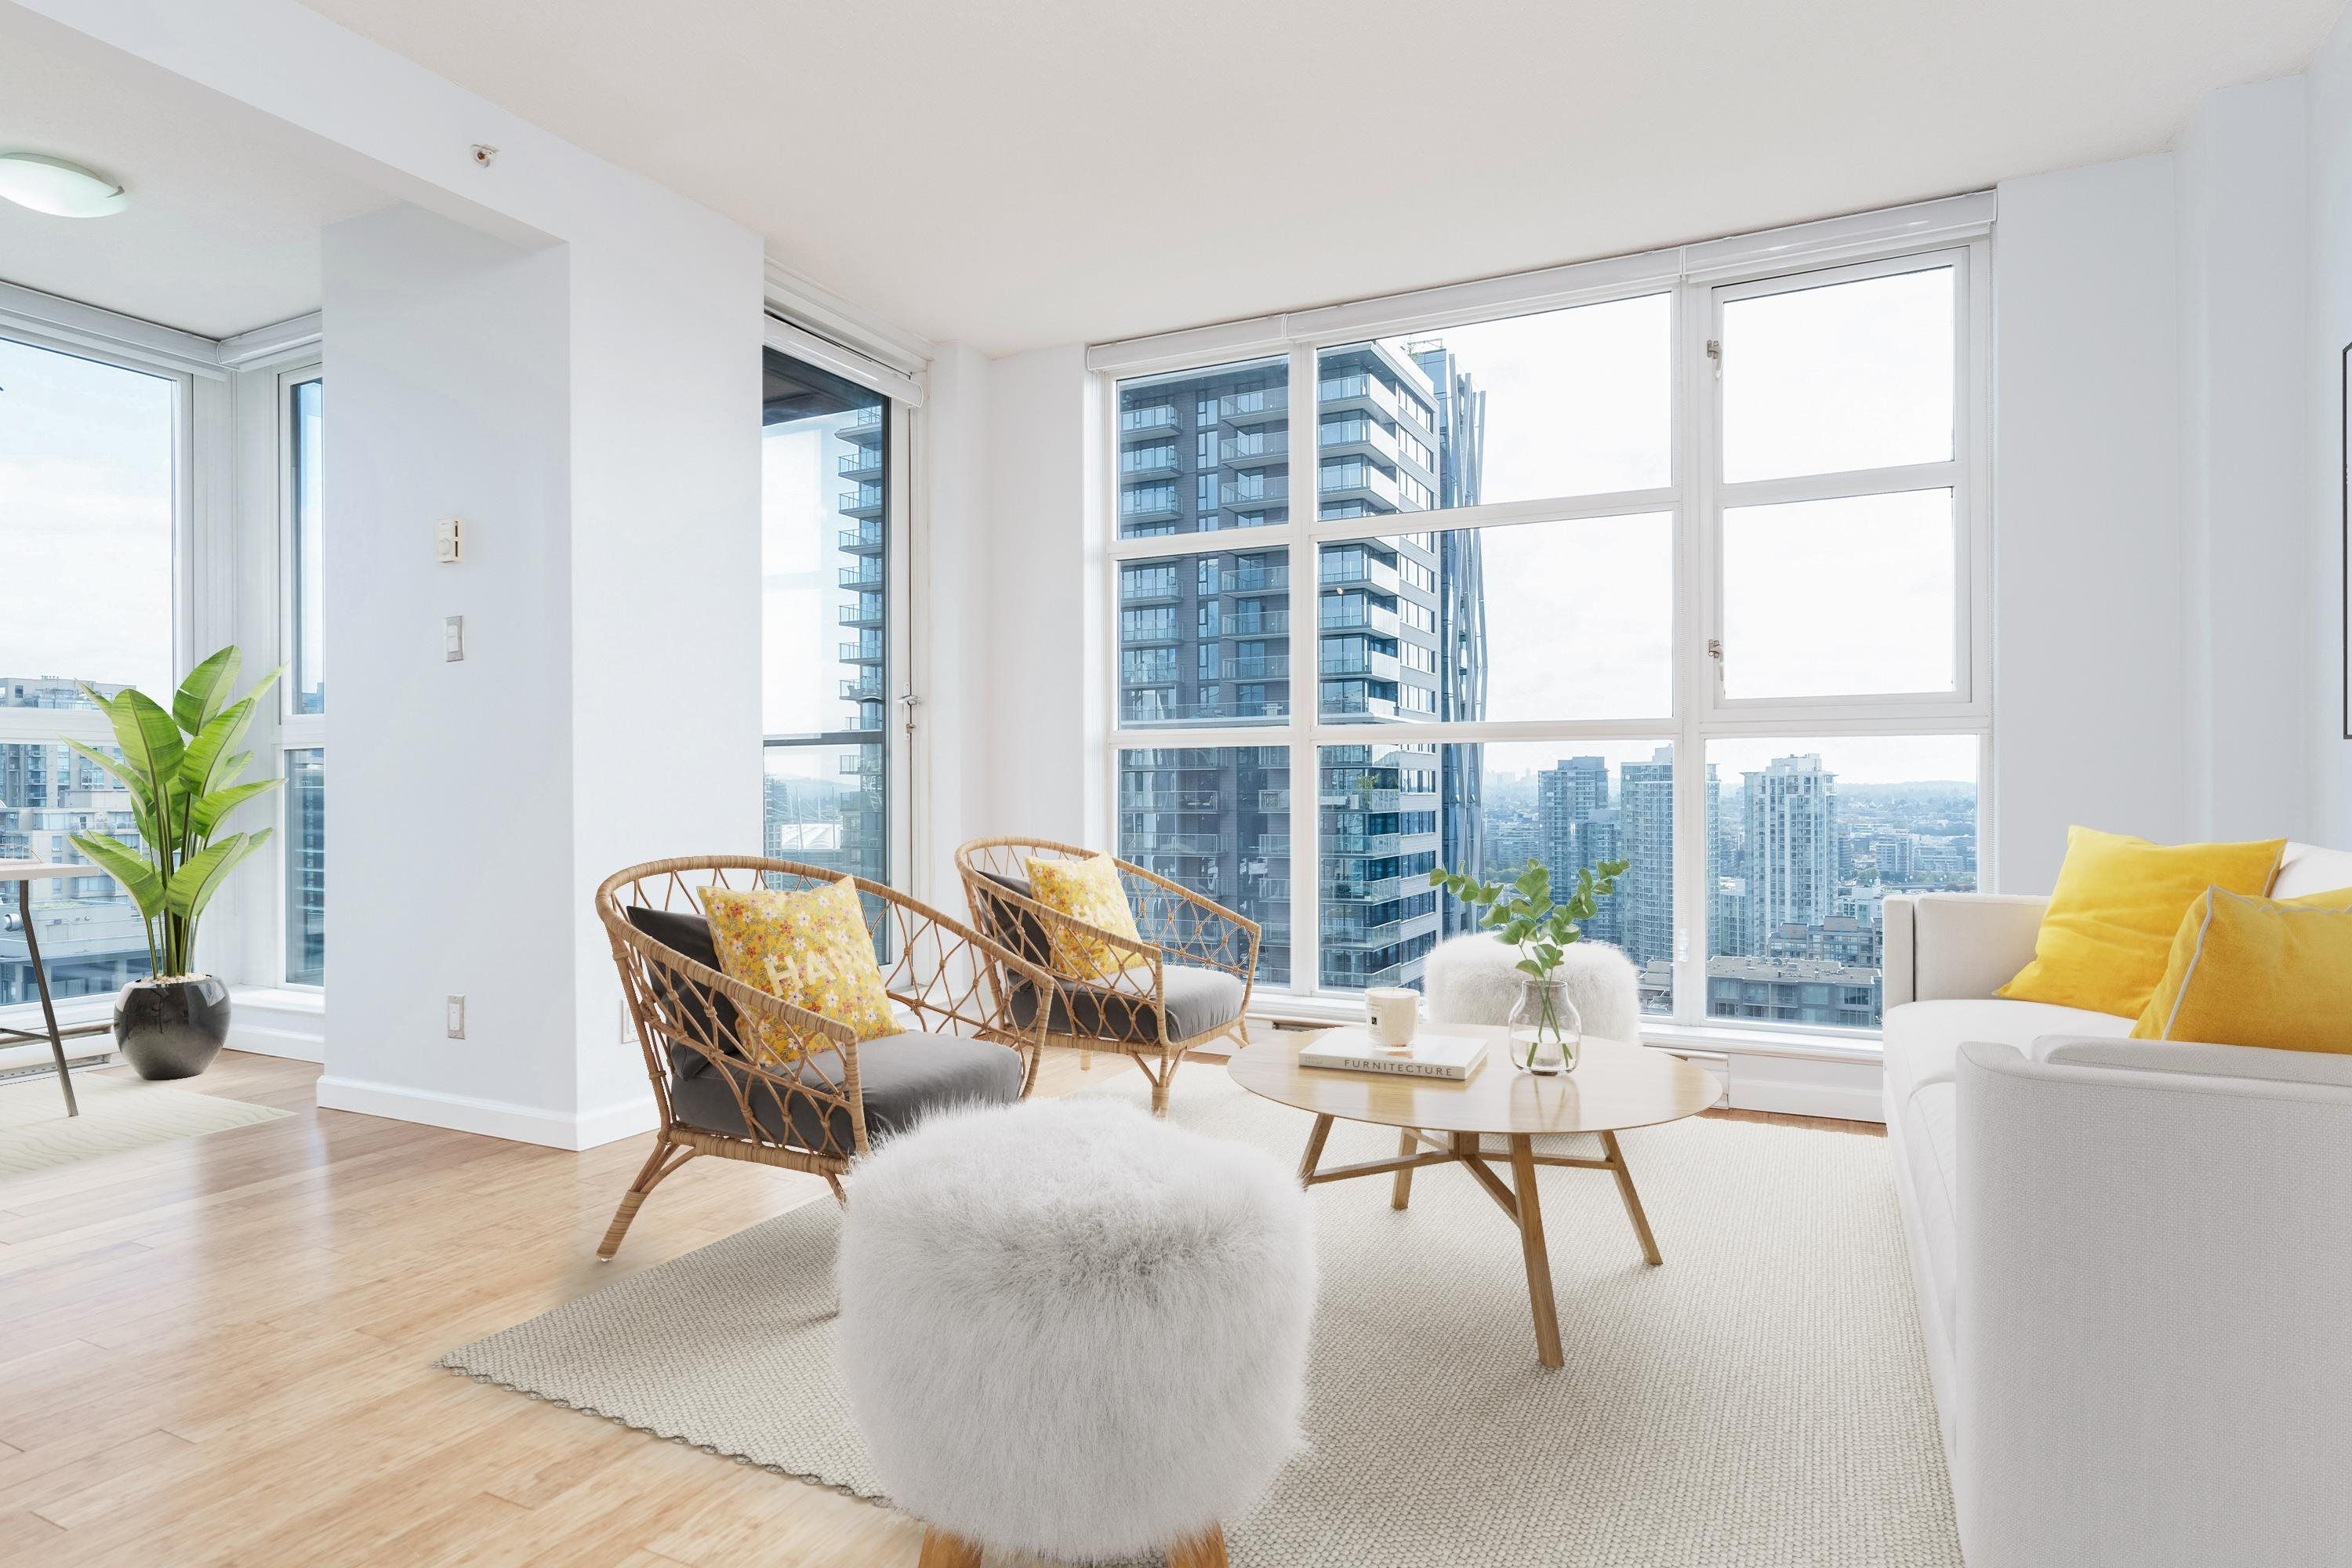 """Main Photo: 2404 1155 SEYMOUR Street in Vancouver: Downtown VW Condo for sale in """"BRAVA TOWERS"""" (Vancouver West)  : MLS®# R2618901"""